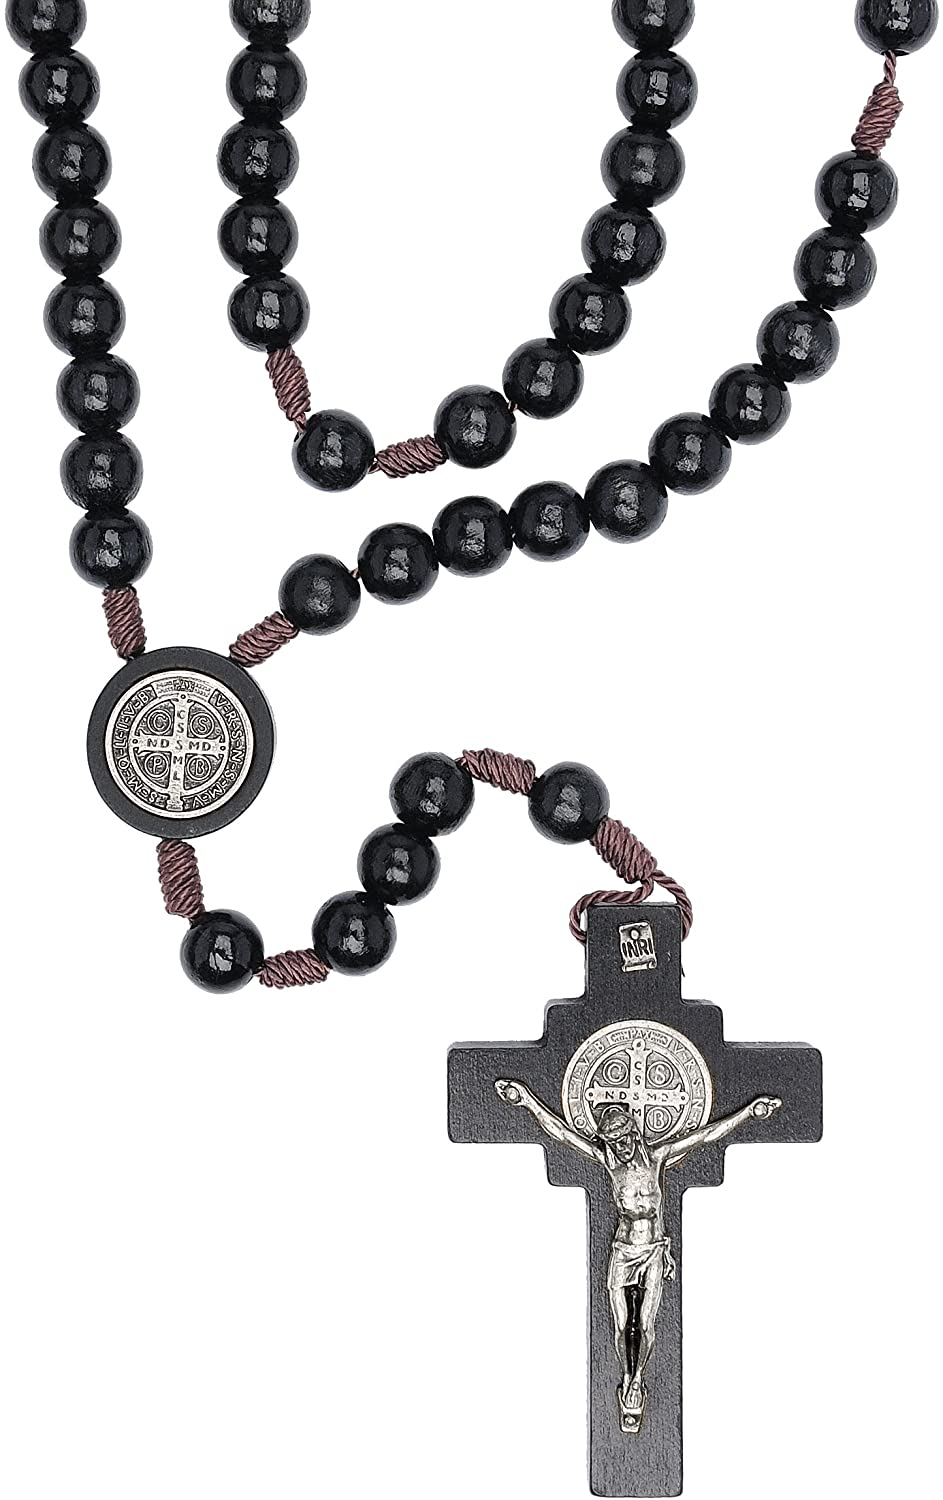 Intercession St Benedict Mens Large Rosary - Made in Brazil (Black)